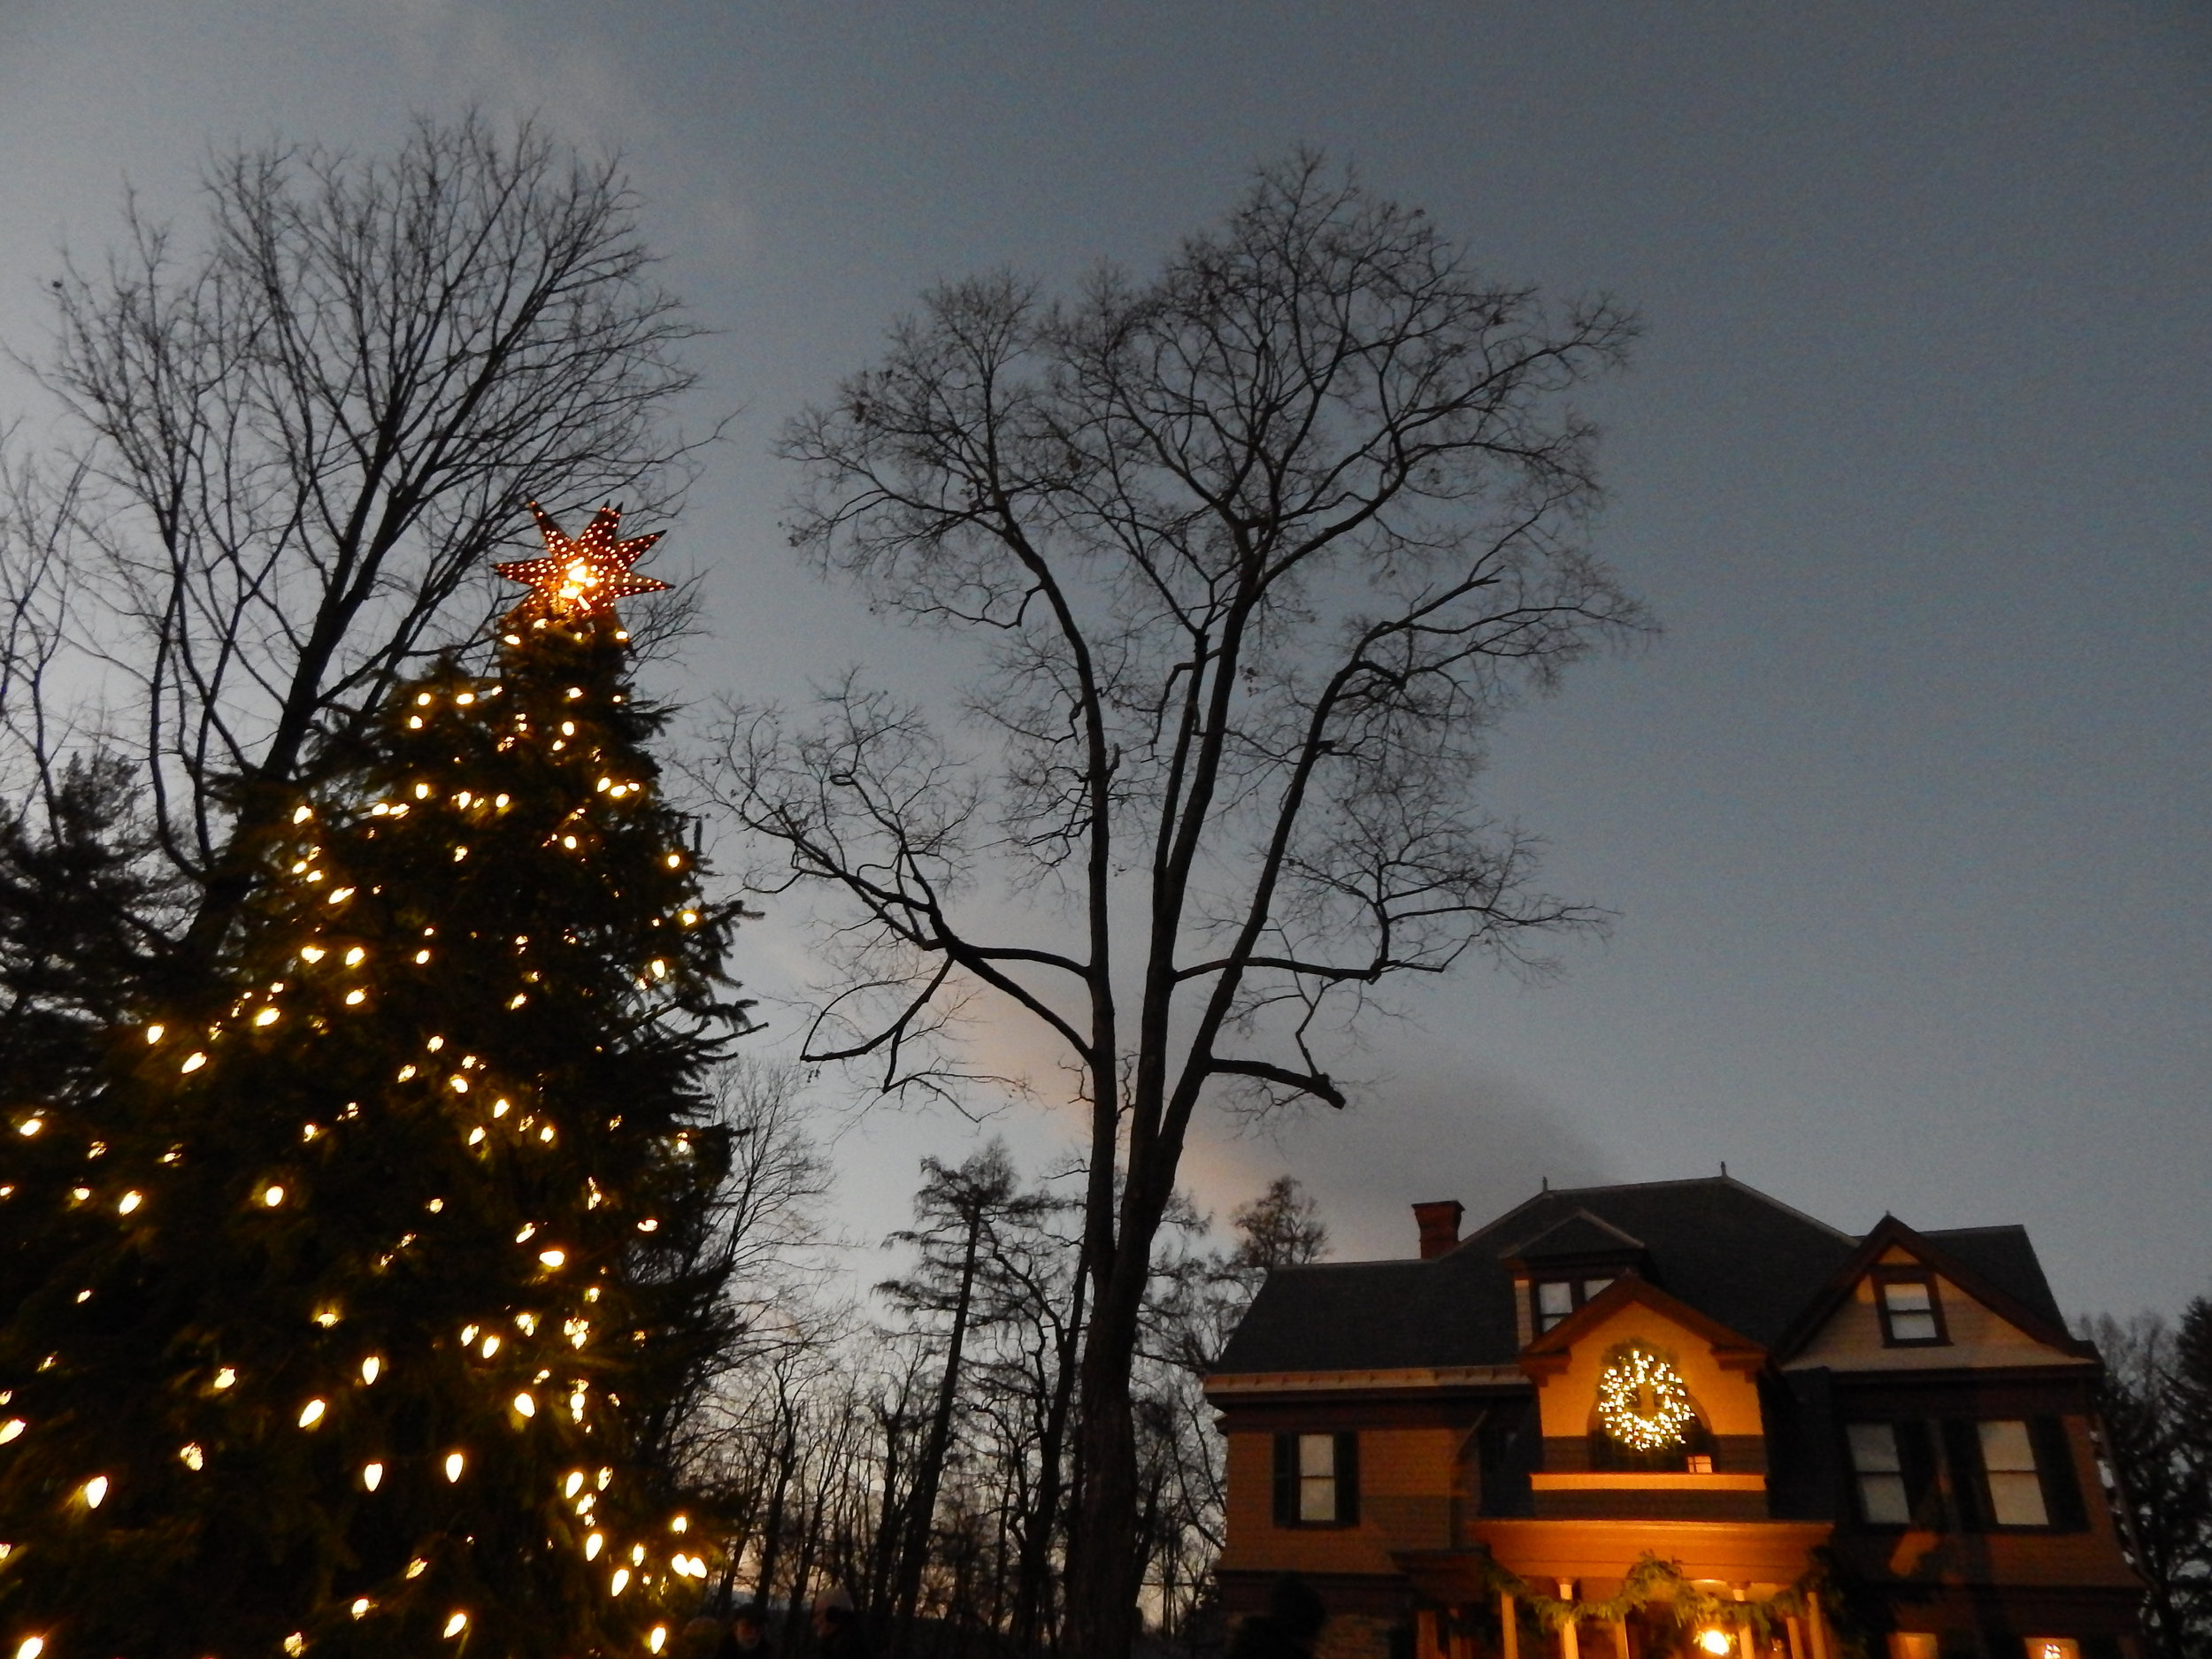 Community Tree Lighting in front of the historic Deyo House